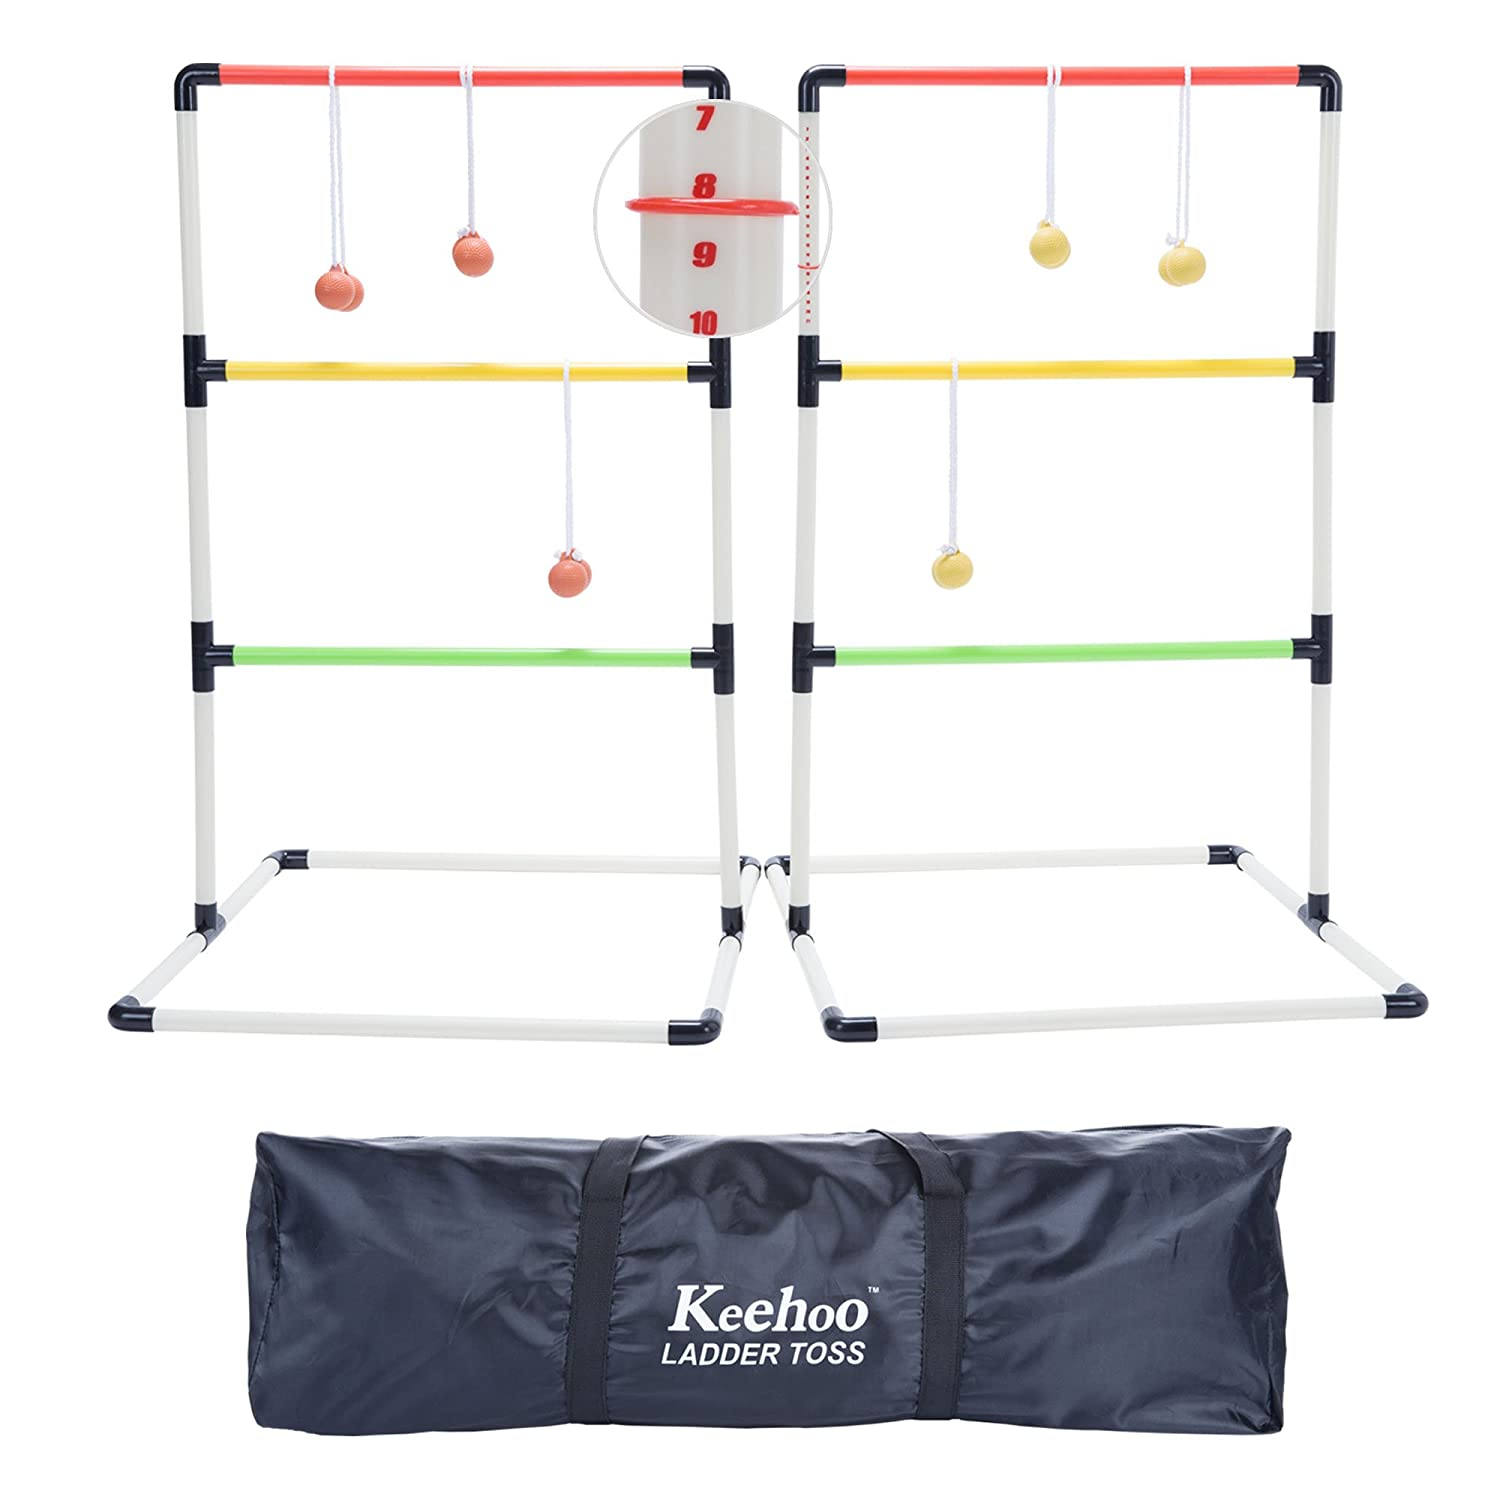 KH Yard Ladder Ball Toss Game for Adults and Family with 6 Bolos、スコアトラッカーと防水キャリーバッグ